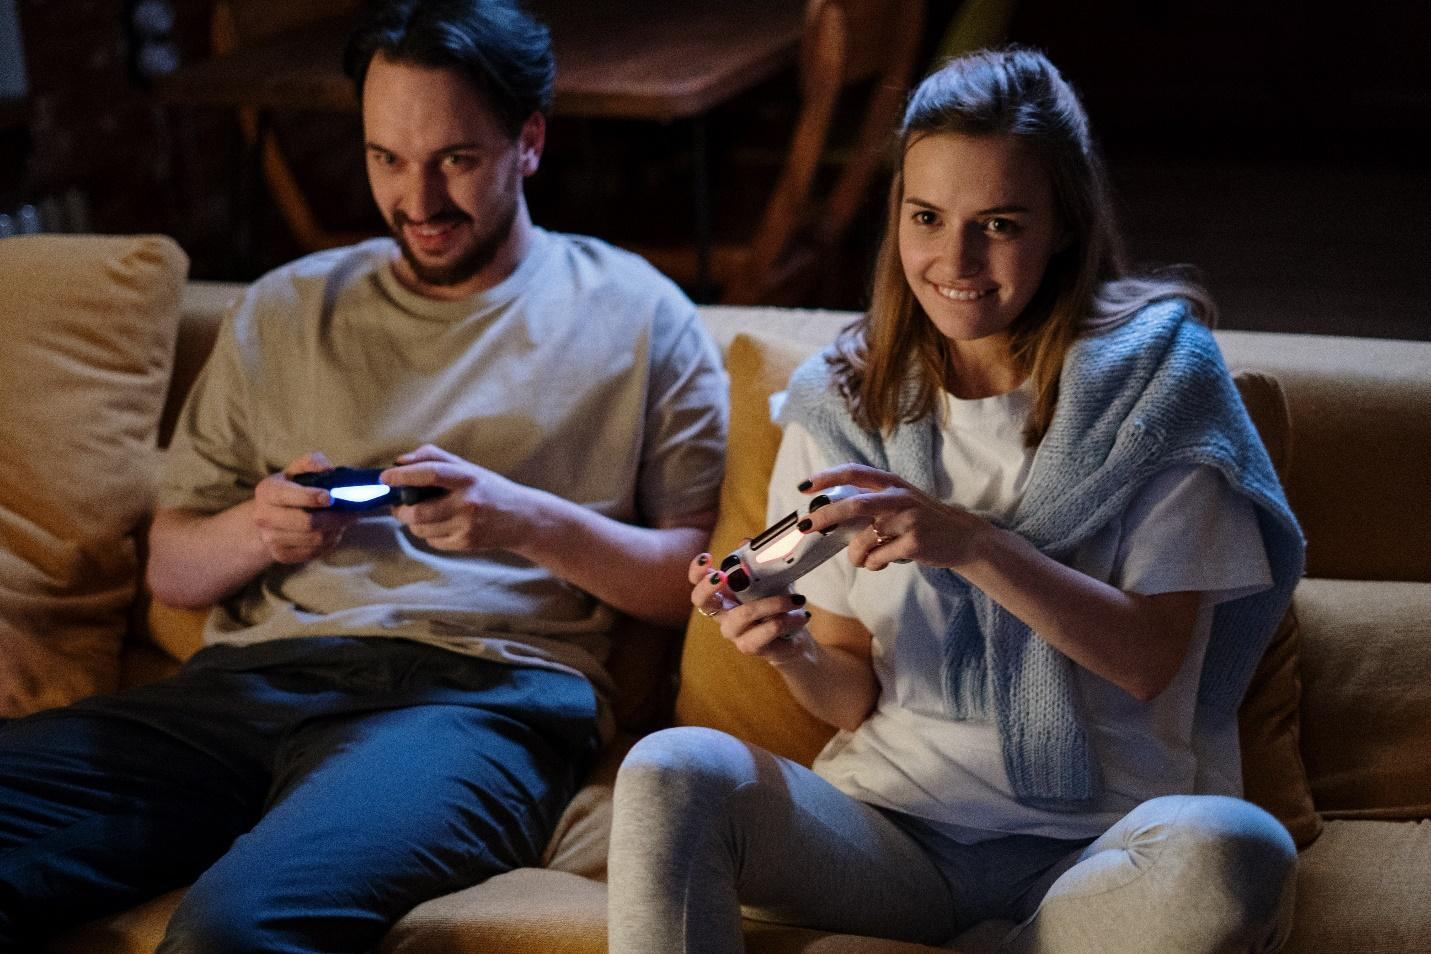 Next-gen consoles and games reflect an evolving gamer demographic